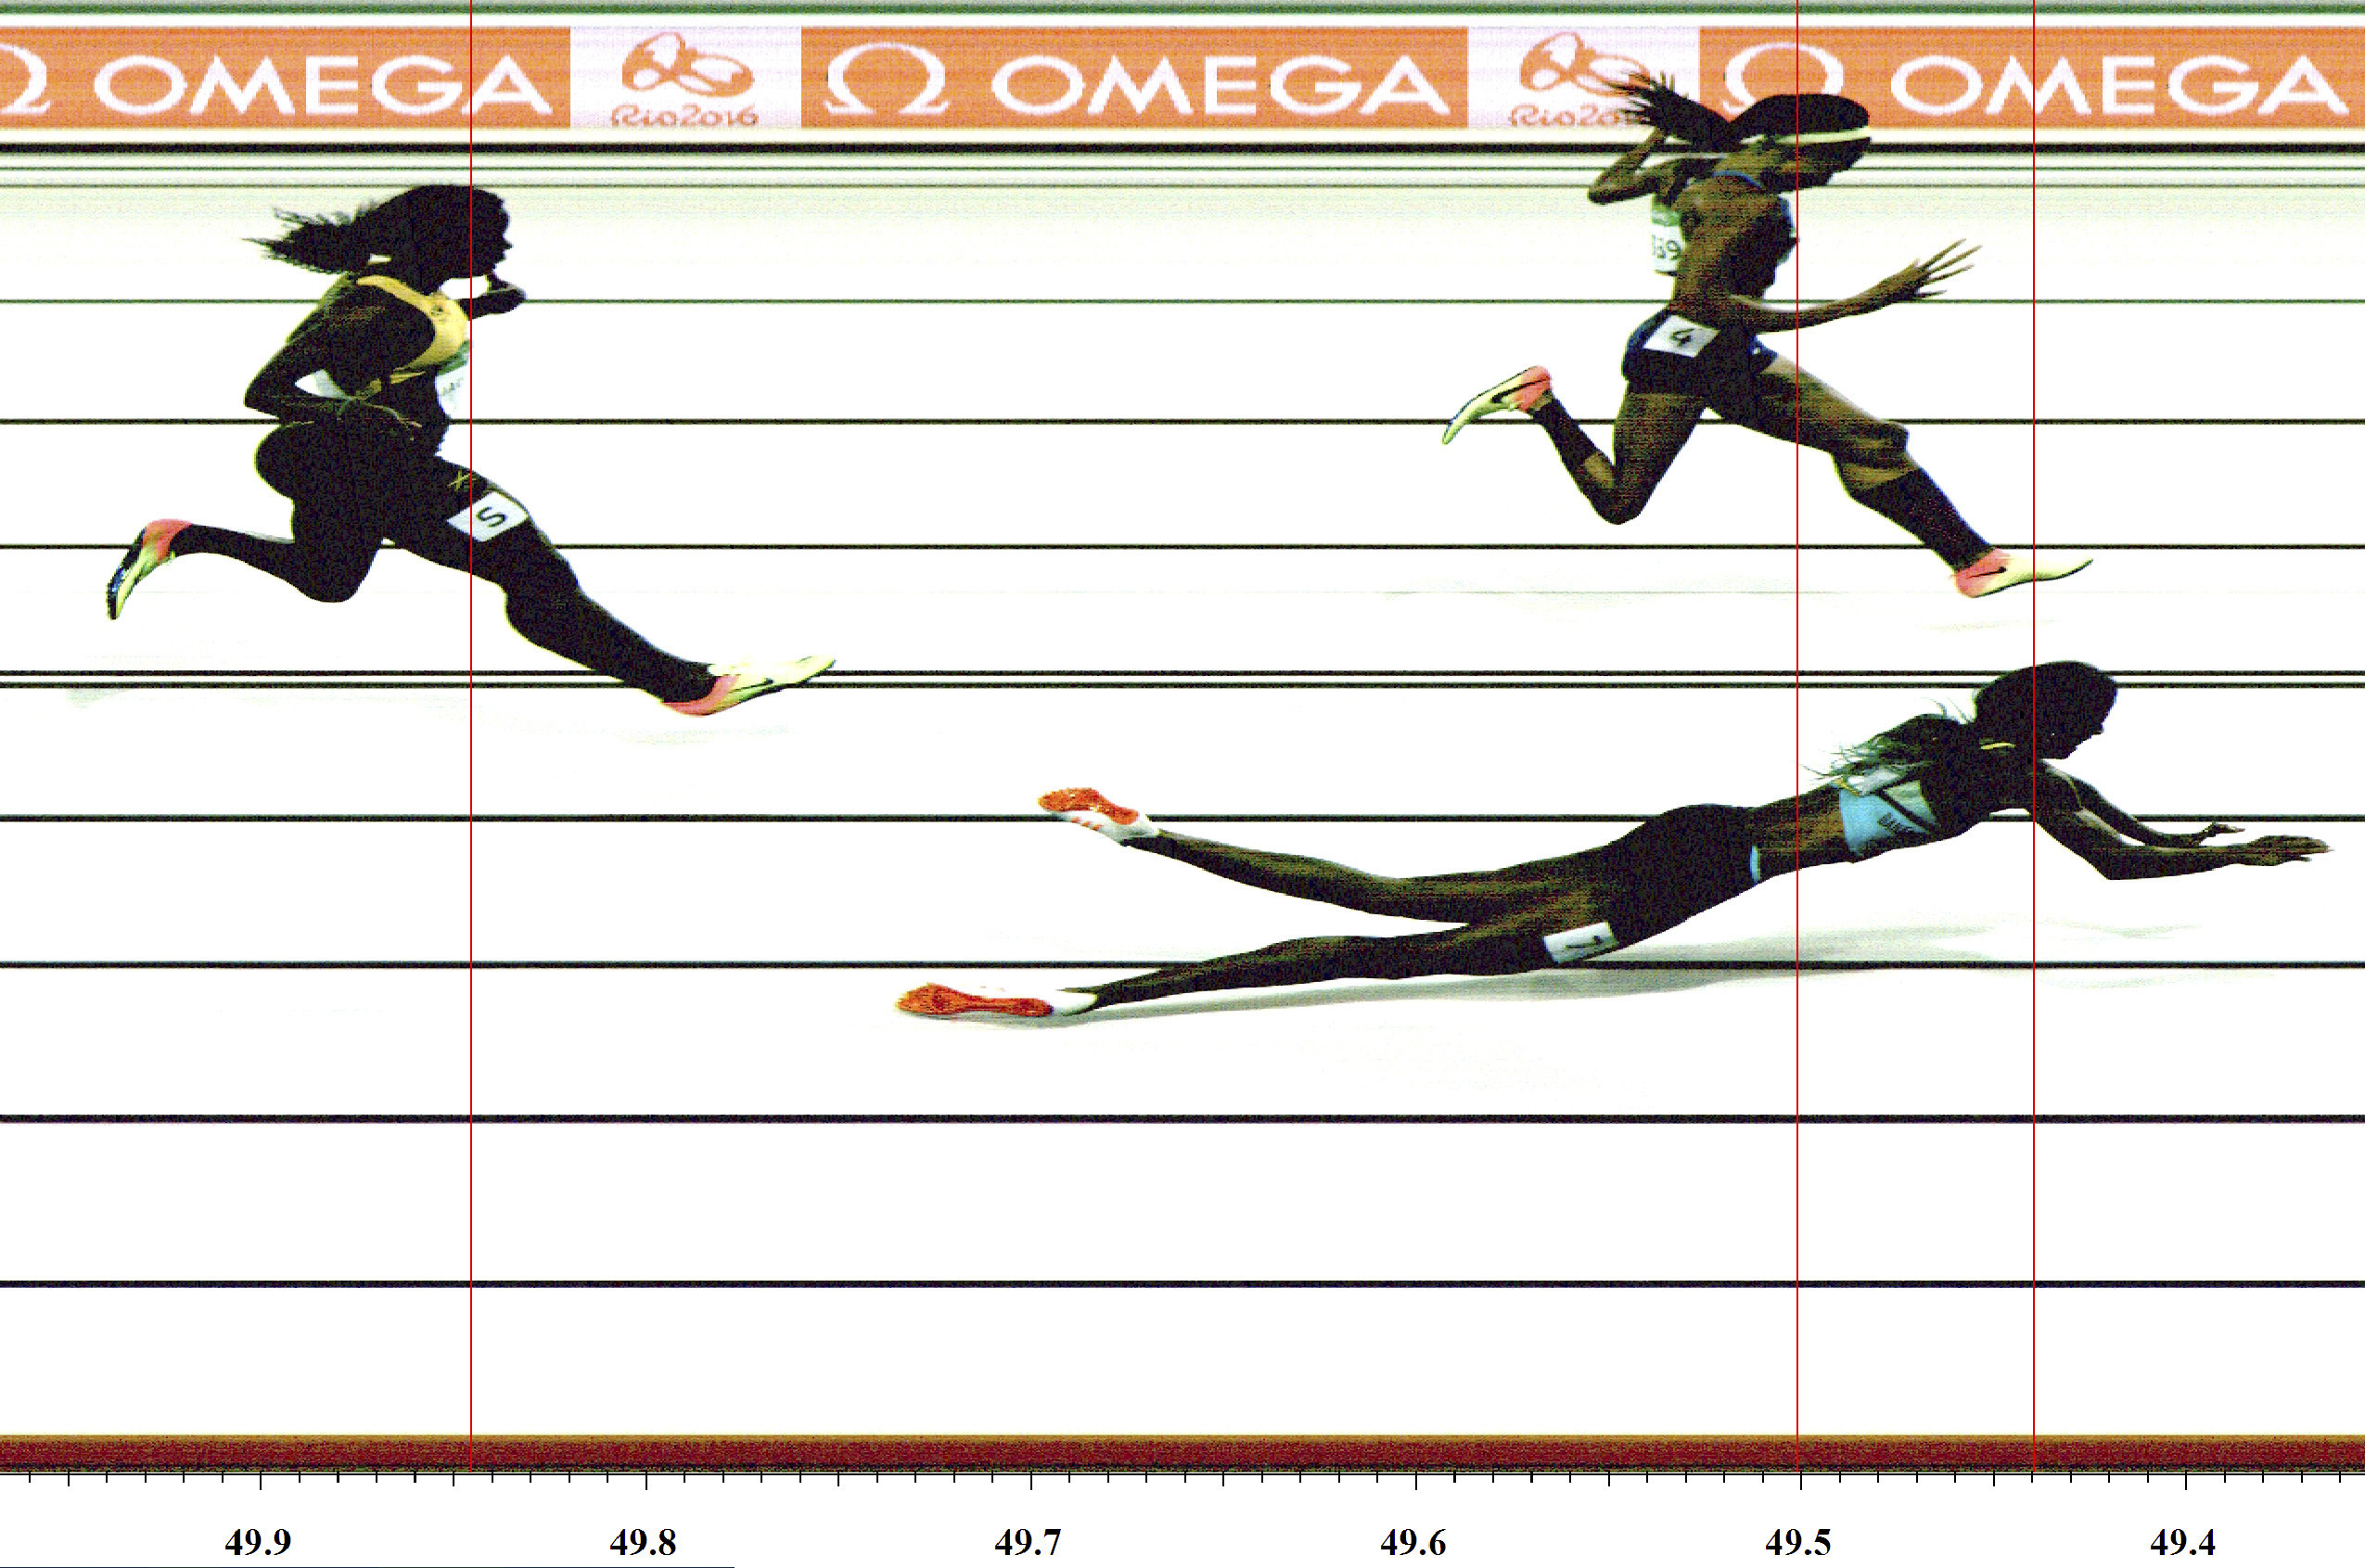 The image provided by OMEGA on Monday shows the photo finish of the women's 400-meter final when Bahamas' Shaunae Miller (bottom) falls over the finish line to win gold ahead of United States' Allyson Felix (top) and Shericka Jackson of Jamaica in the 2016 Rio de Janeiro Games. The figures at the bottom indicate the time when the chest of the athletes crossed the finish line. | OMEGA TIMING VIA AP